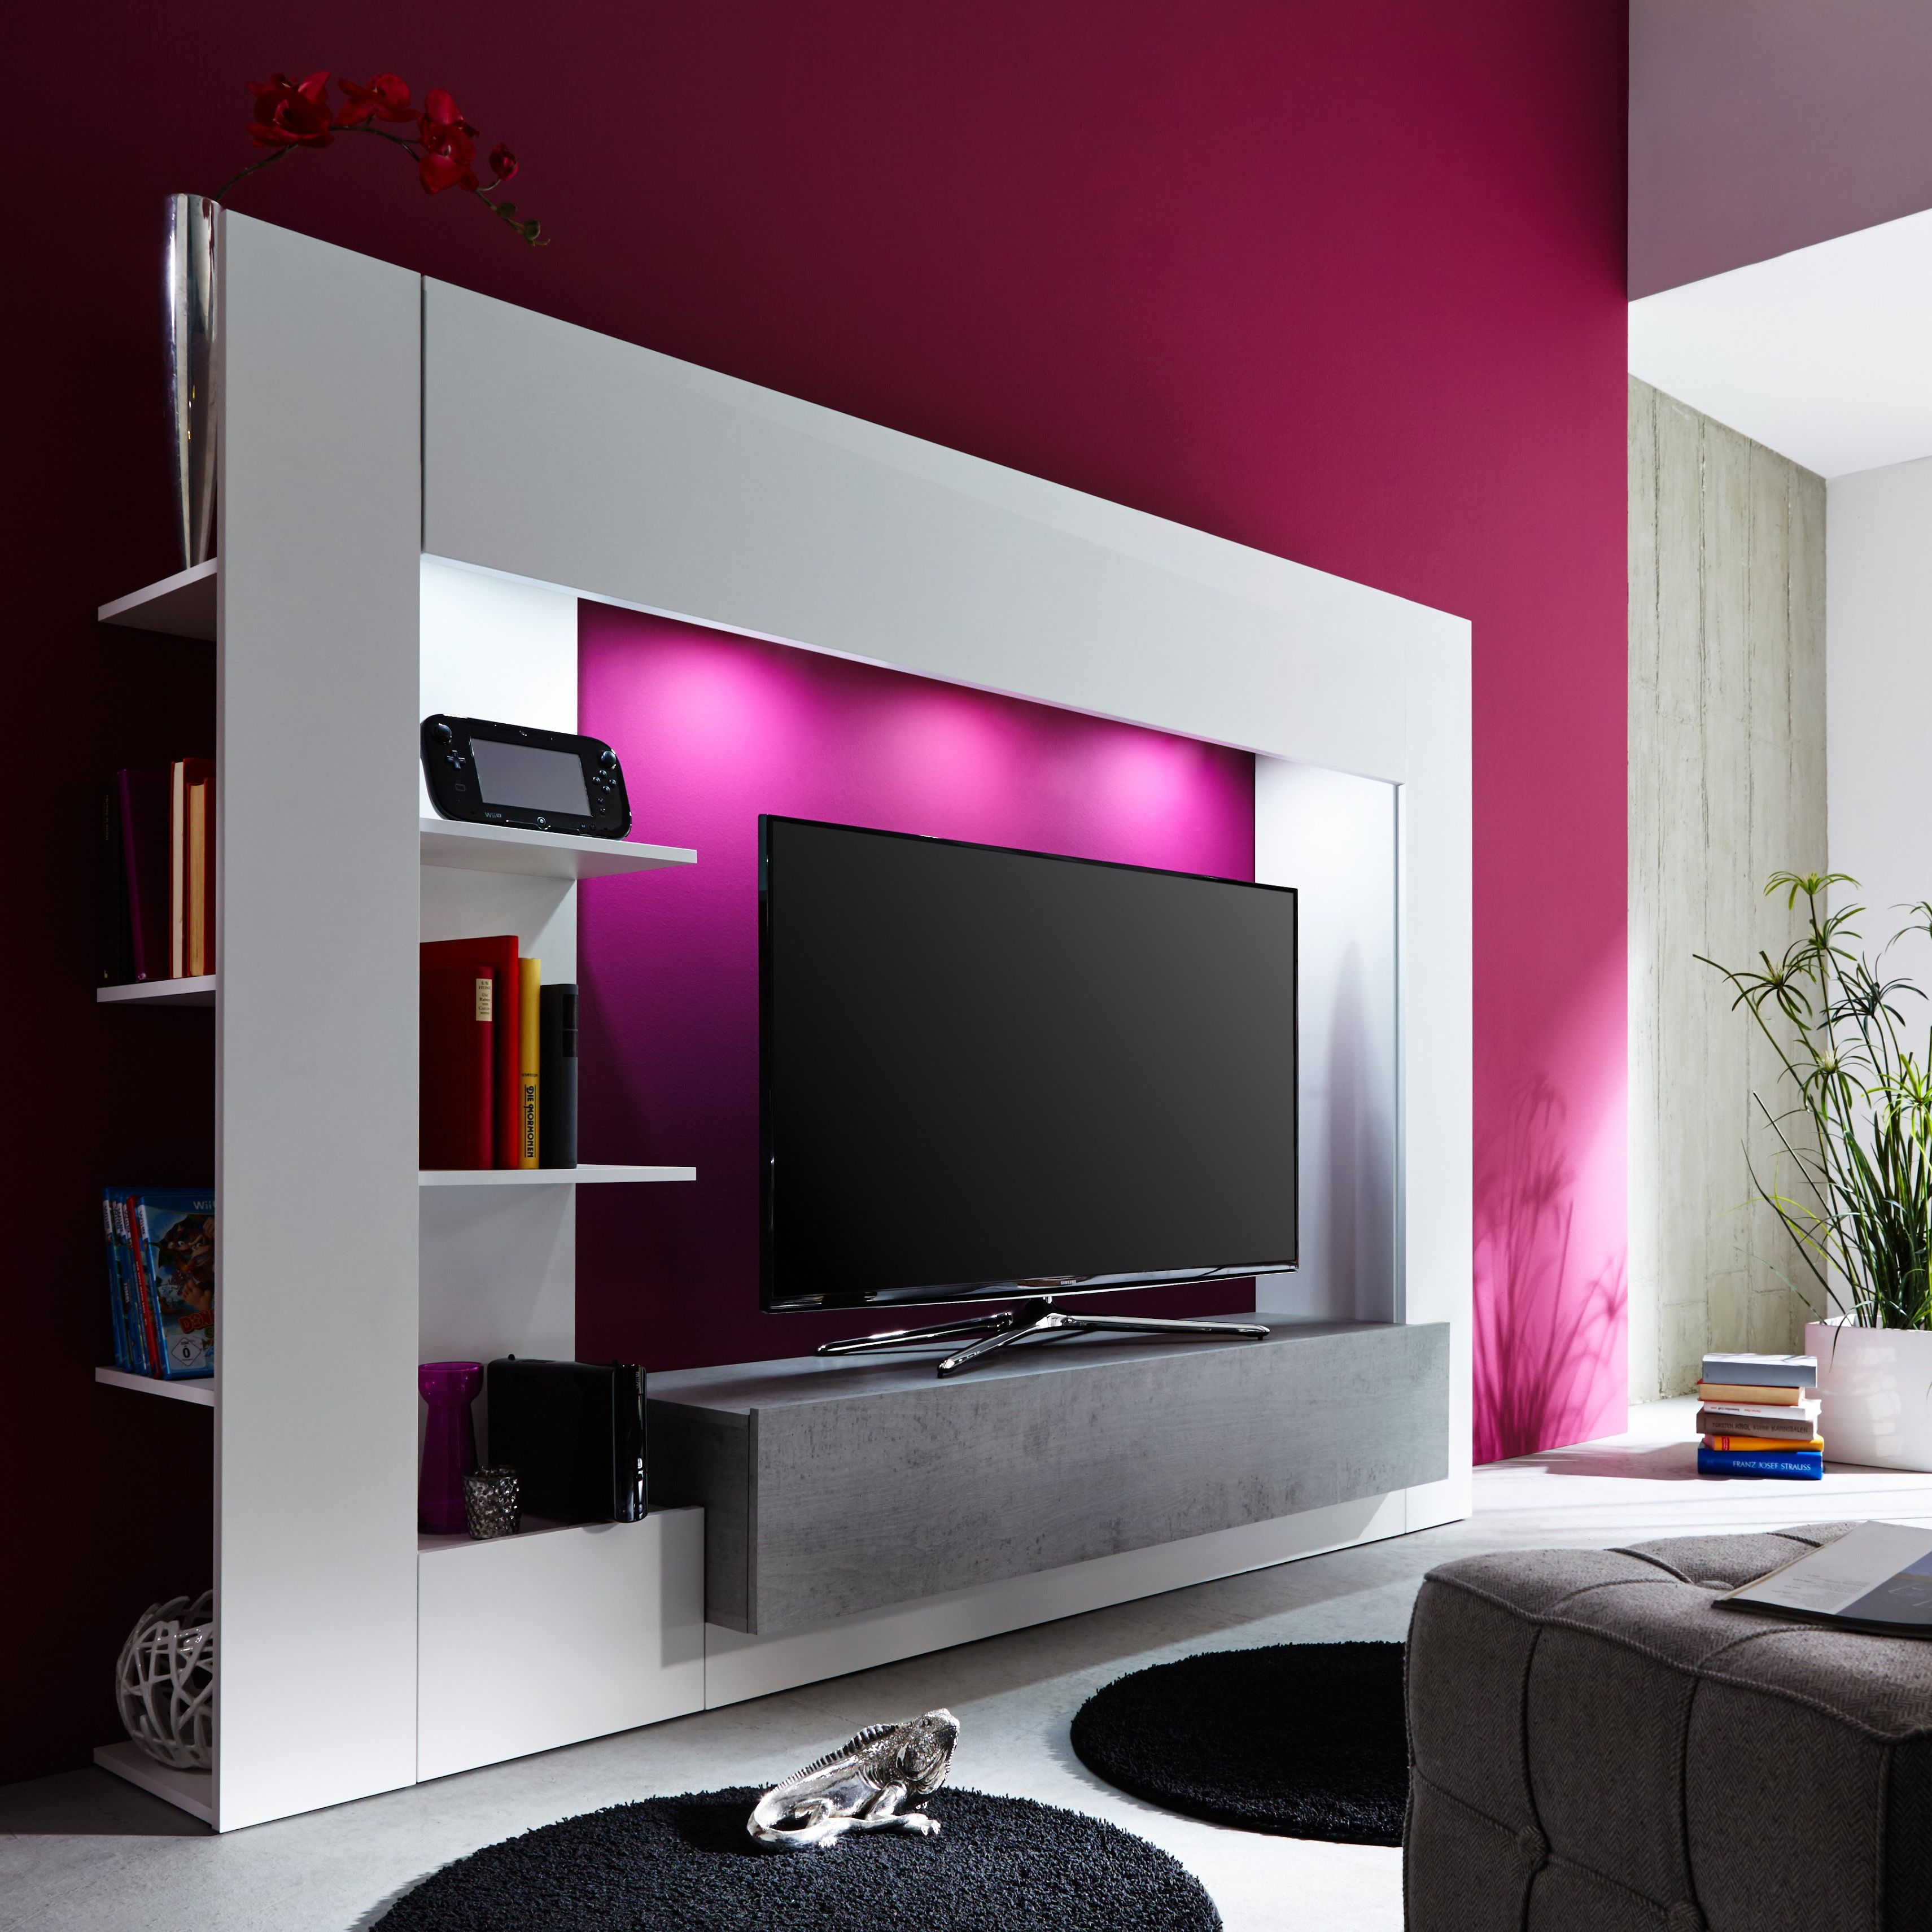 die moderne tv wohnwand harry bietet viel stauraum f r. Black Bedroom Furniture Sets. Home Design Ideas